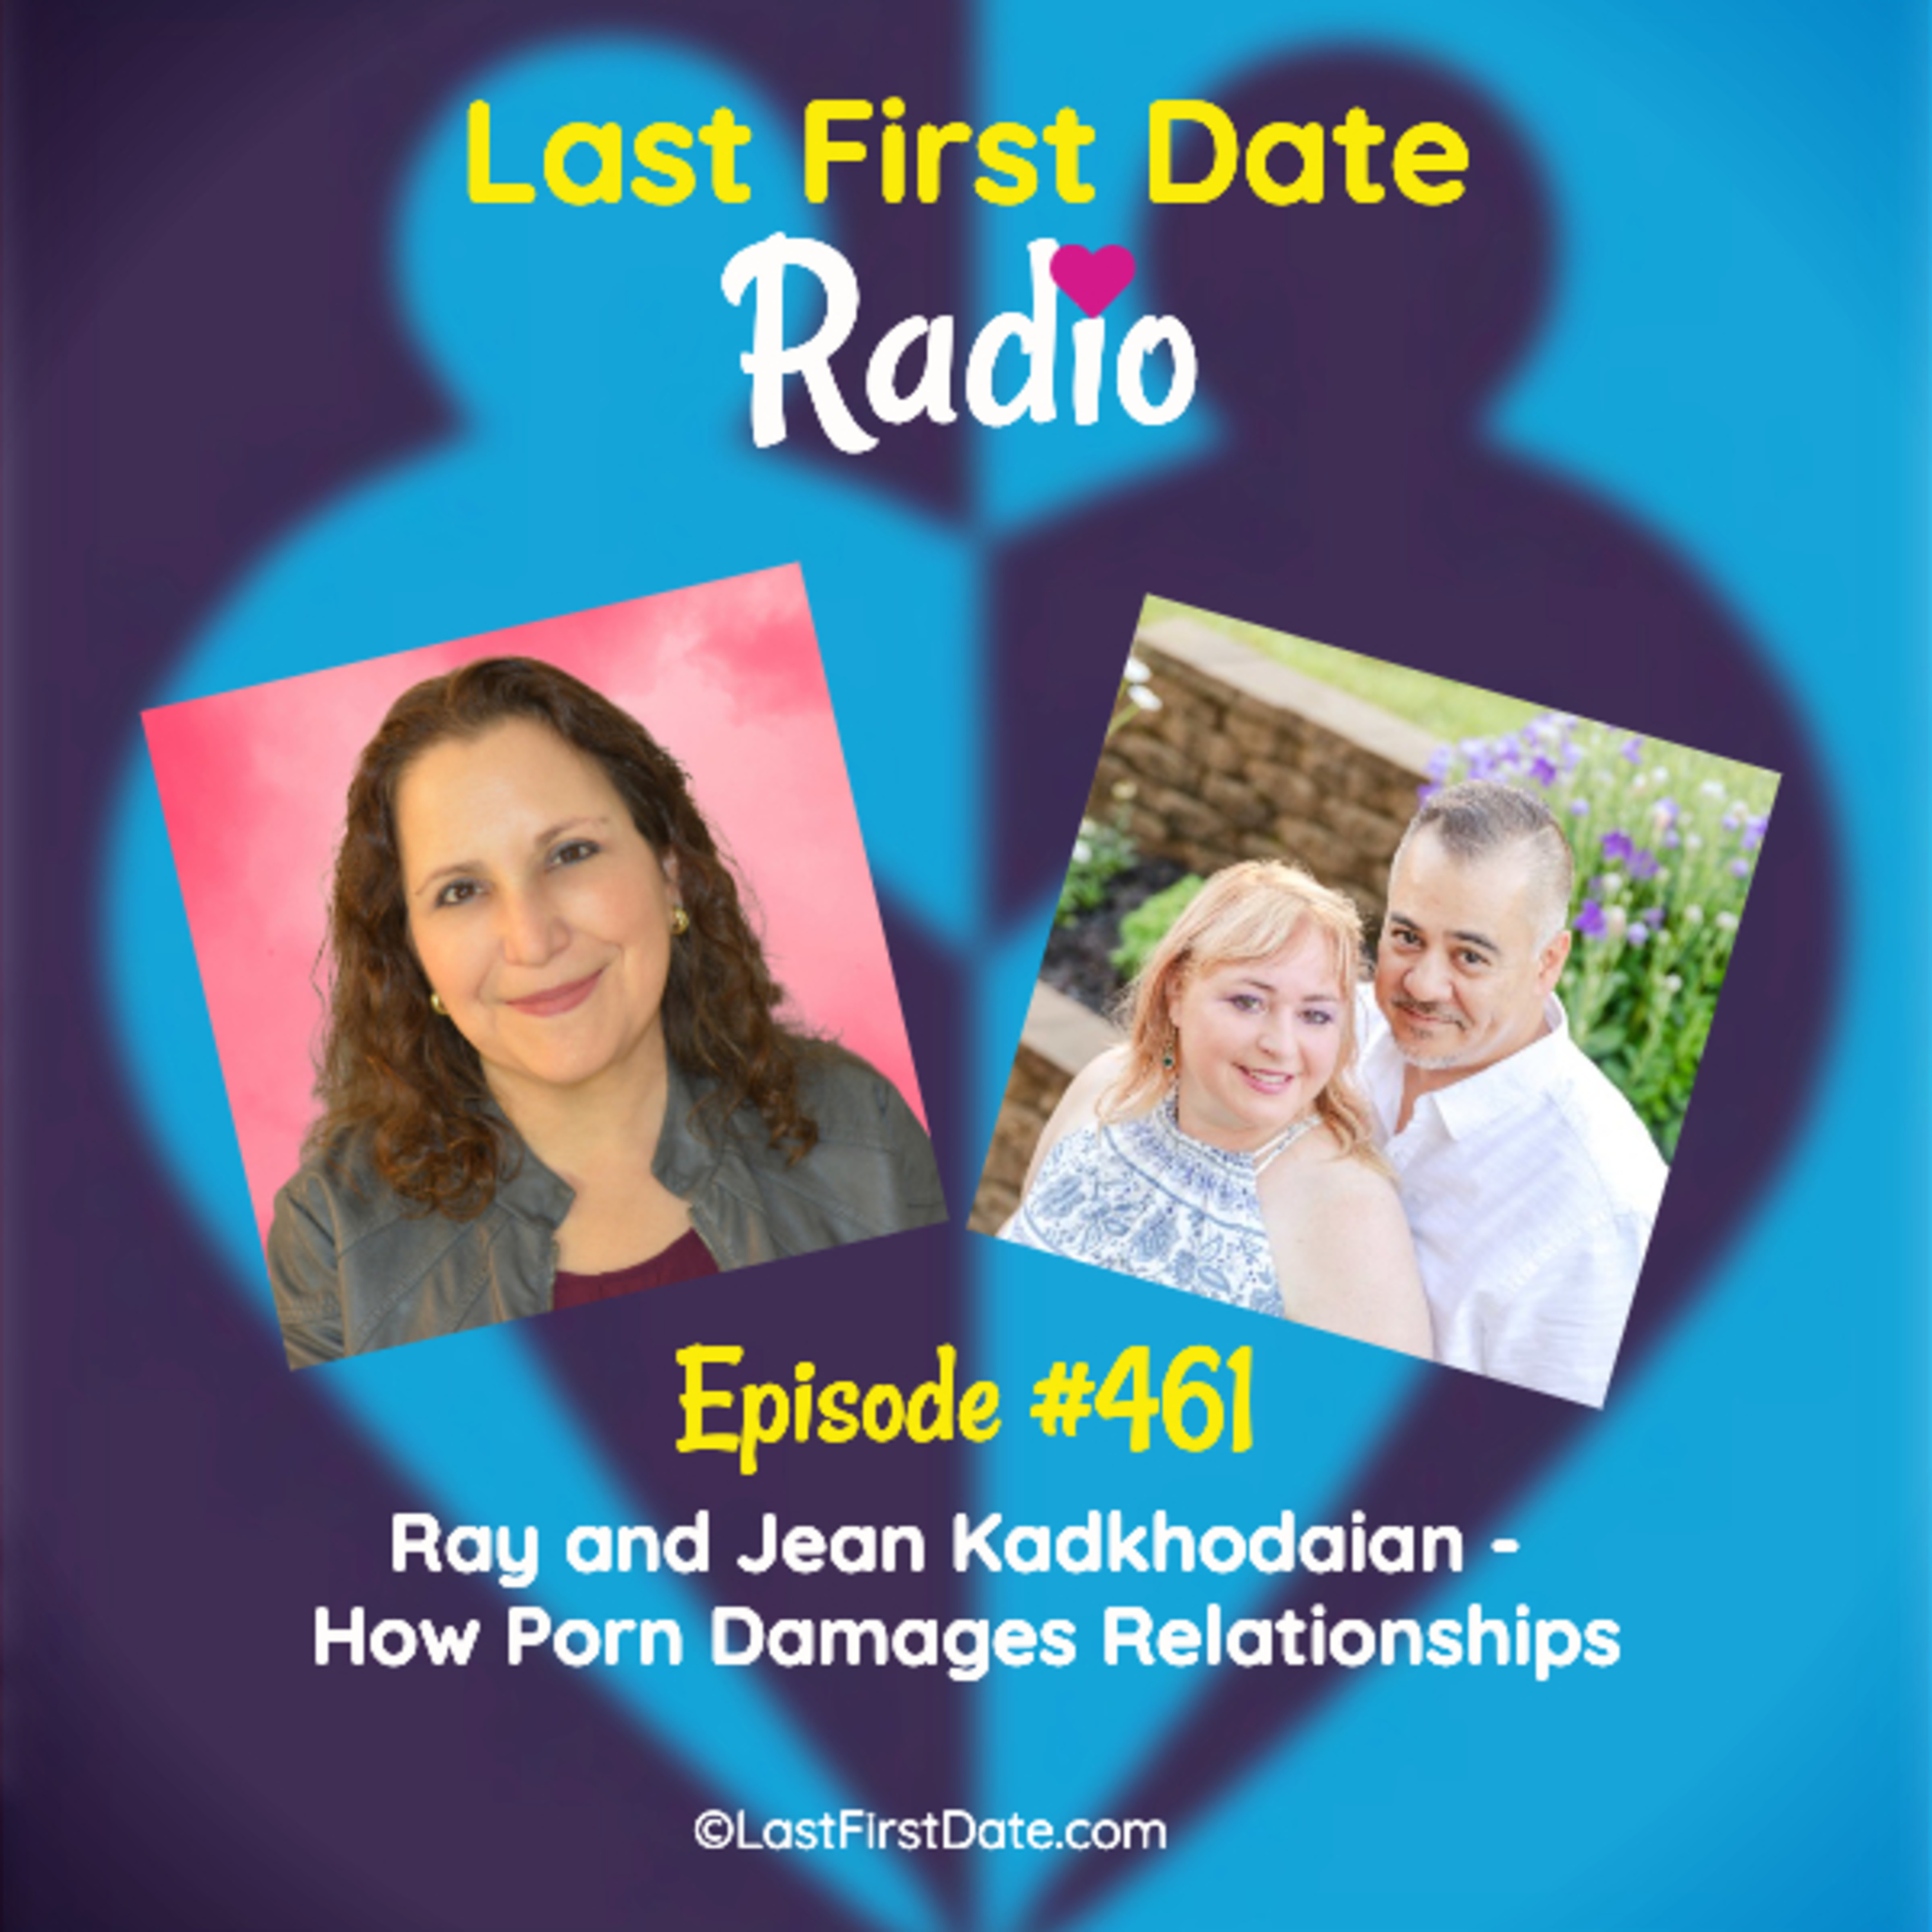 Last First Date Radio - EP 461: Ray and Jean Kadkhodaian - How Porn Damages Relationships